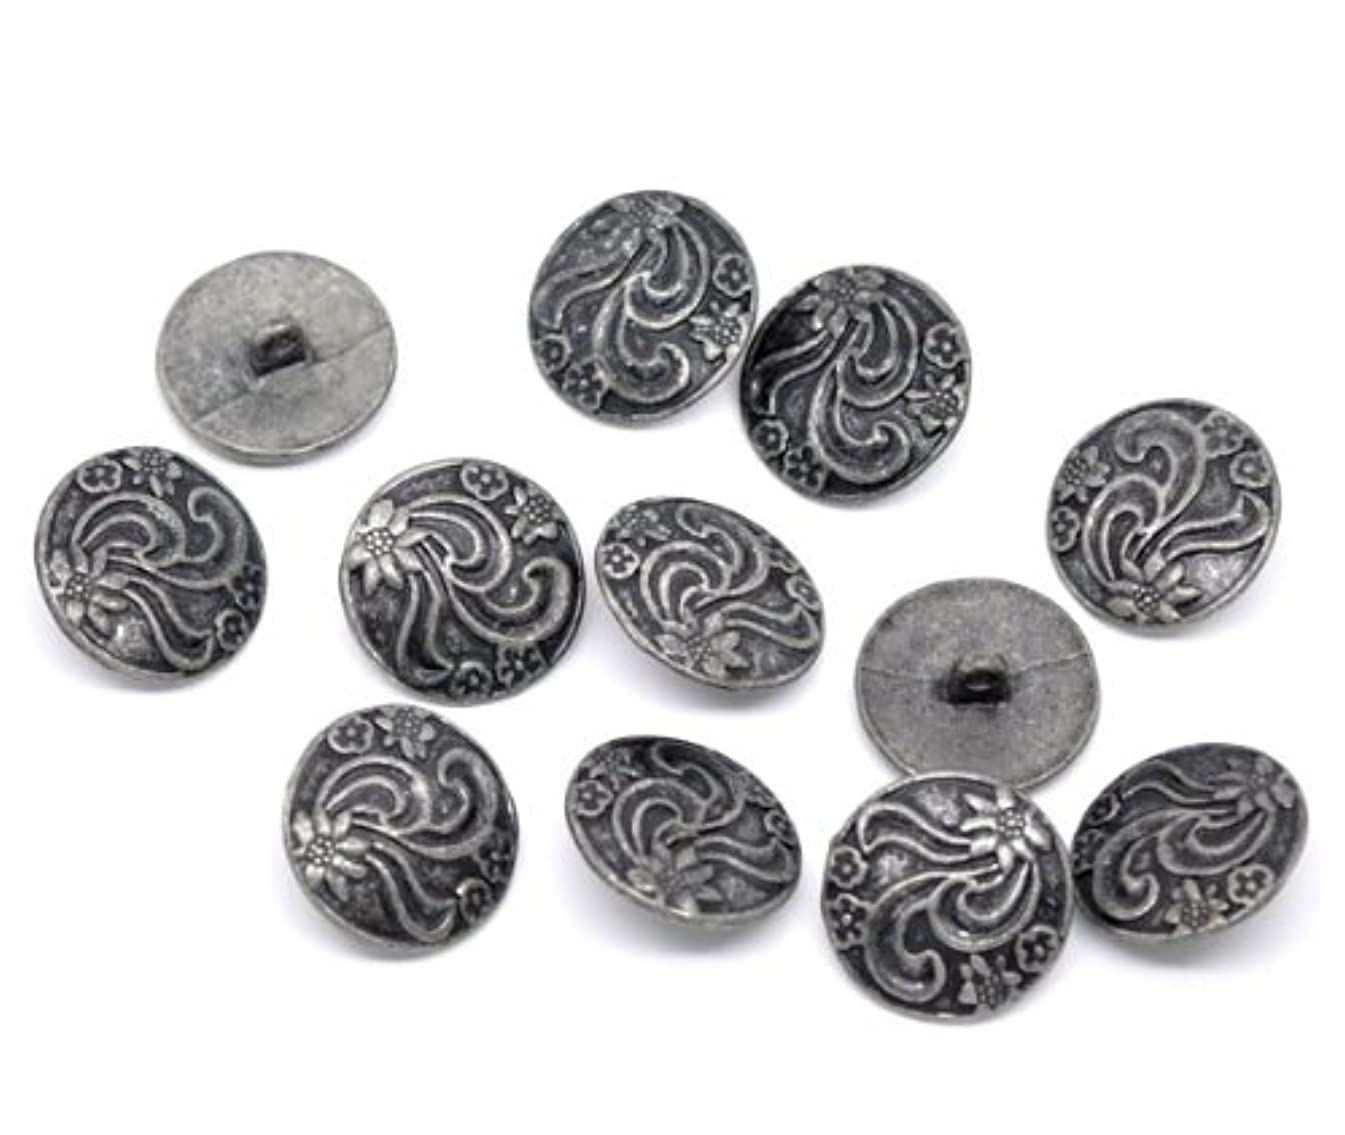 PEPPERLONELY Brand 10PC Antiqued Silver Flower Round Scrapbooking Sewing Buttons 20mm (Approximately 13/16 Inch)